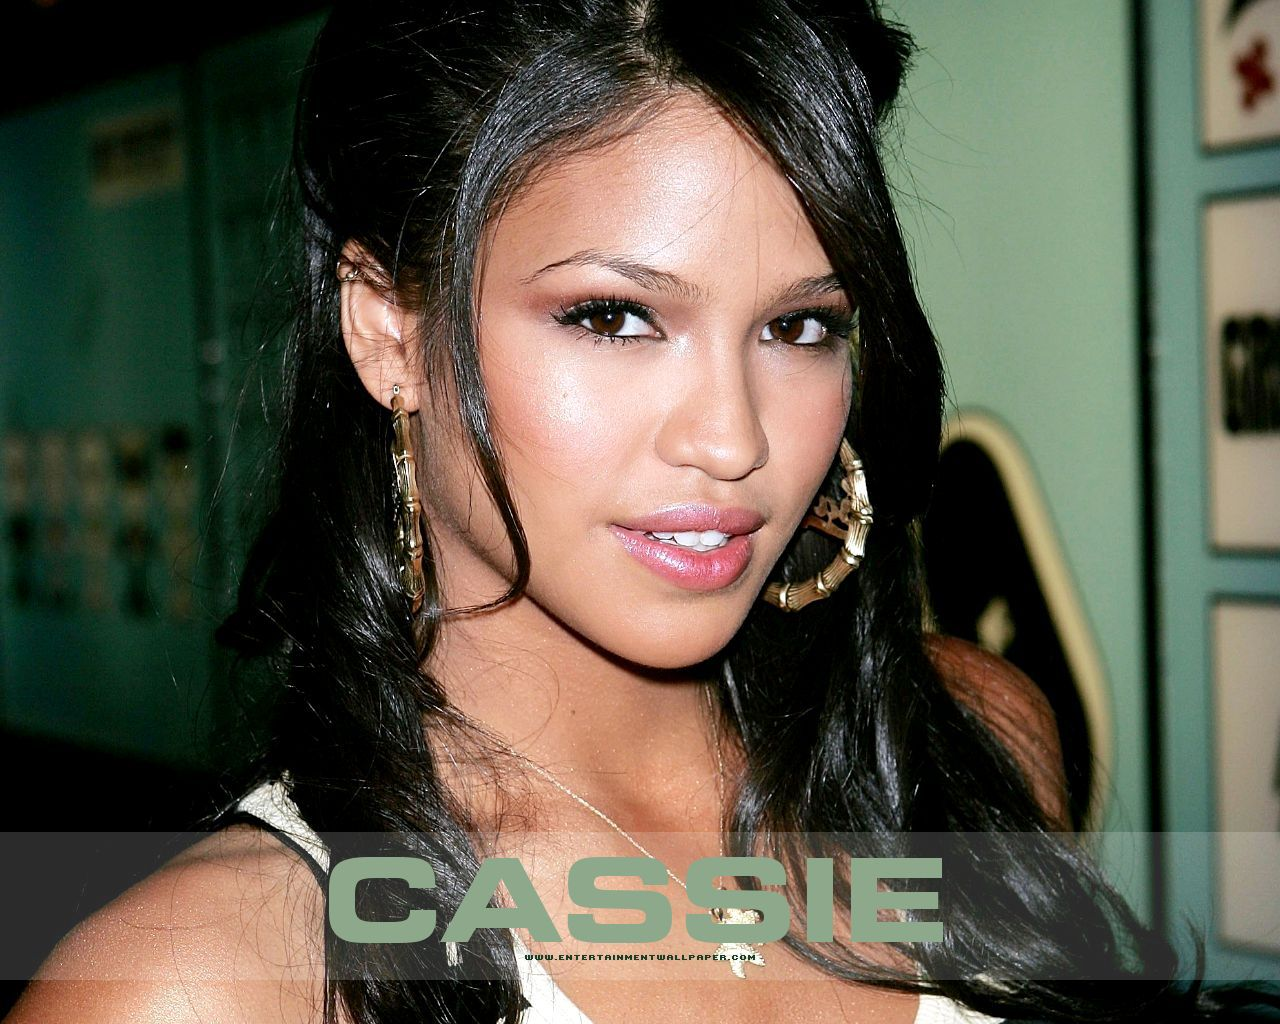 cassie wallpapers photos images - photo #22